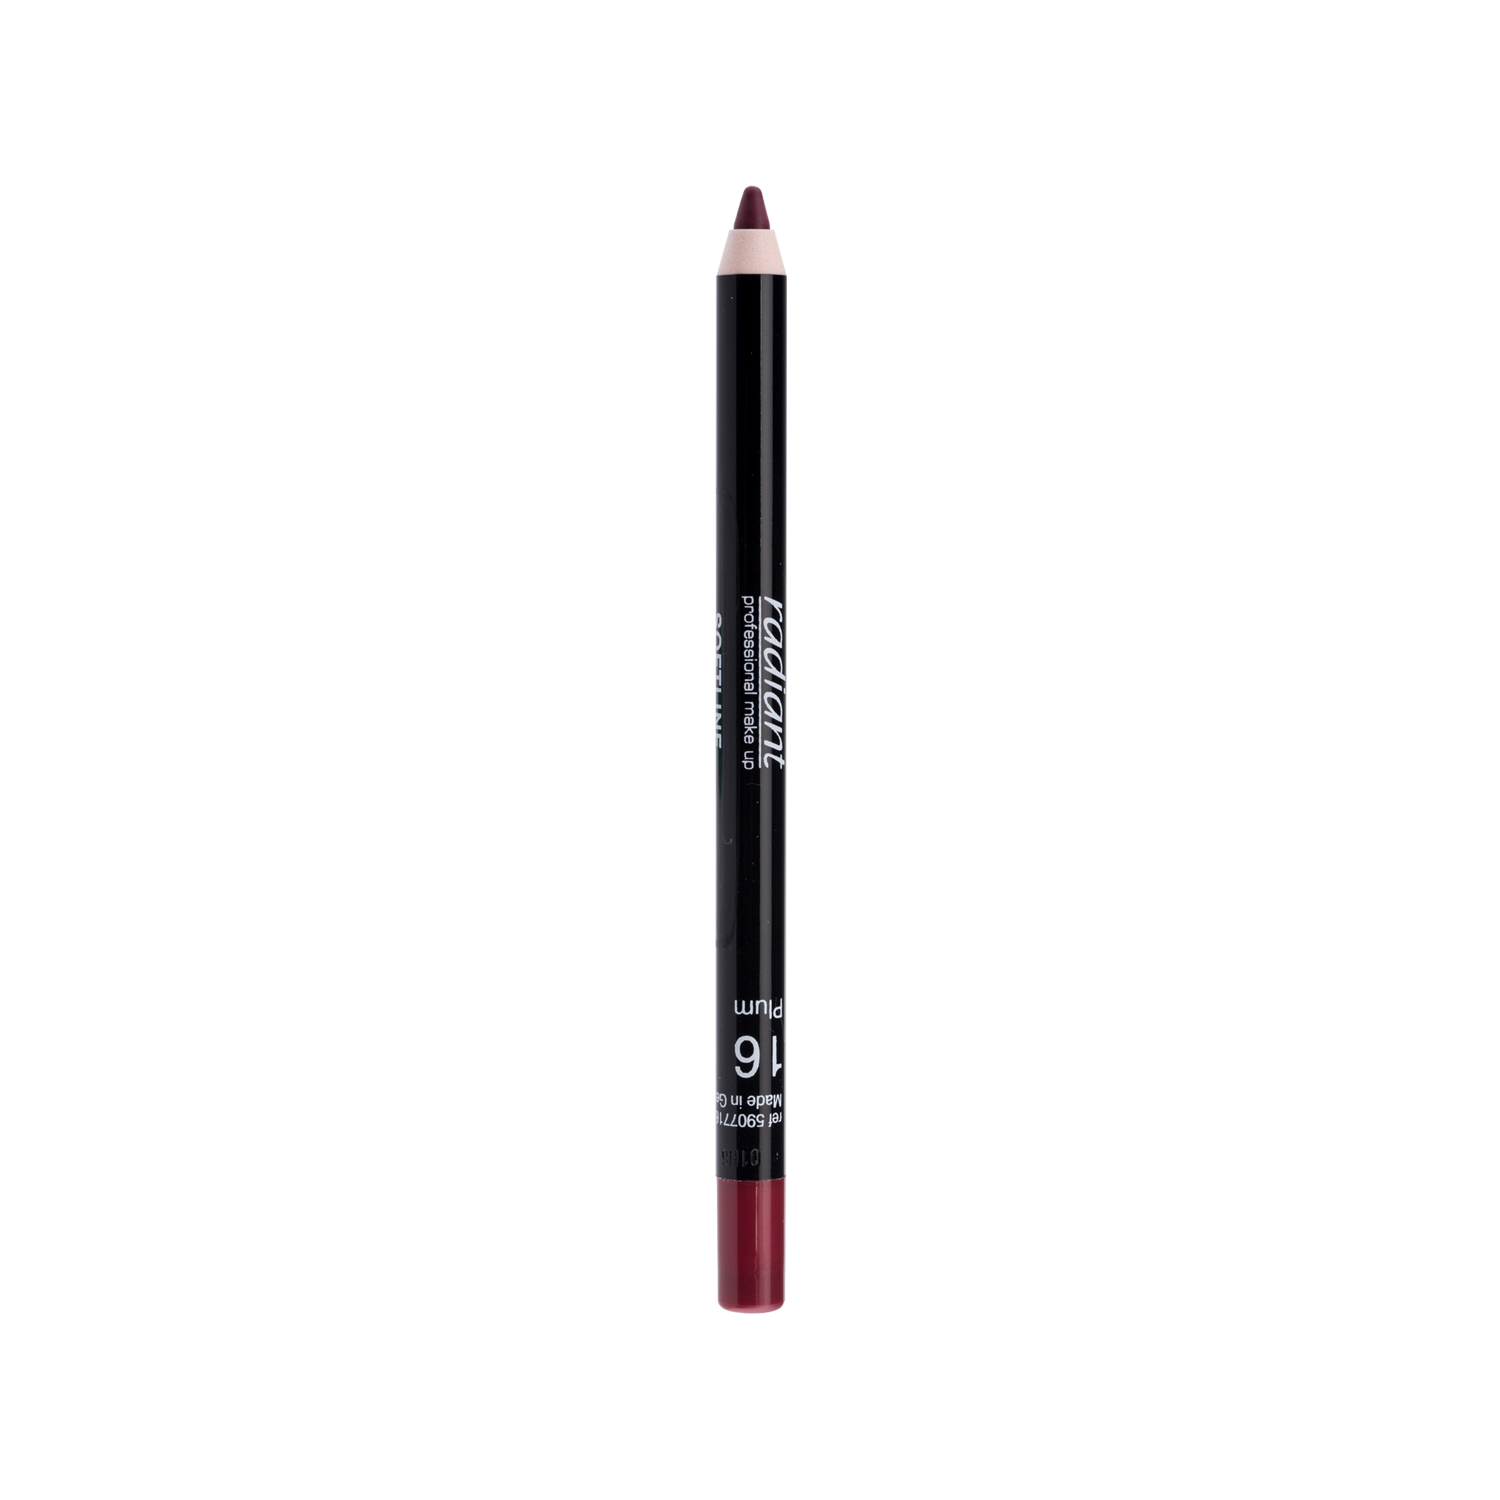 SOFTLINE WATERPROOF LIP PENCIL (16 Plum)